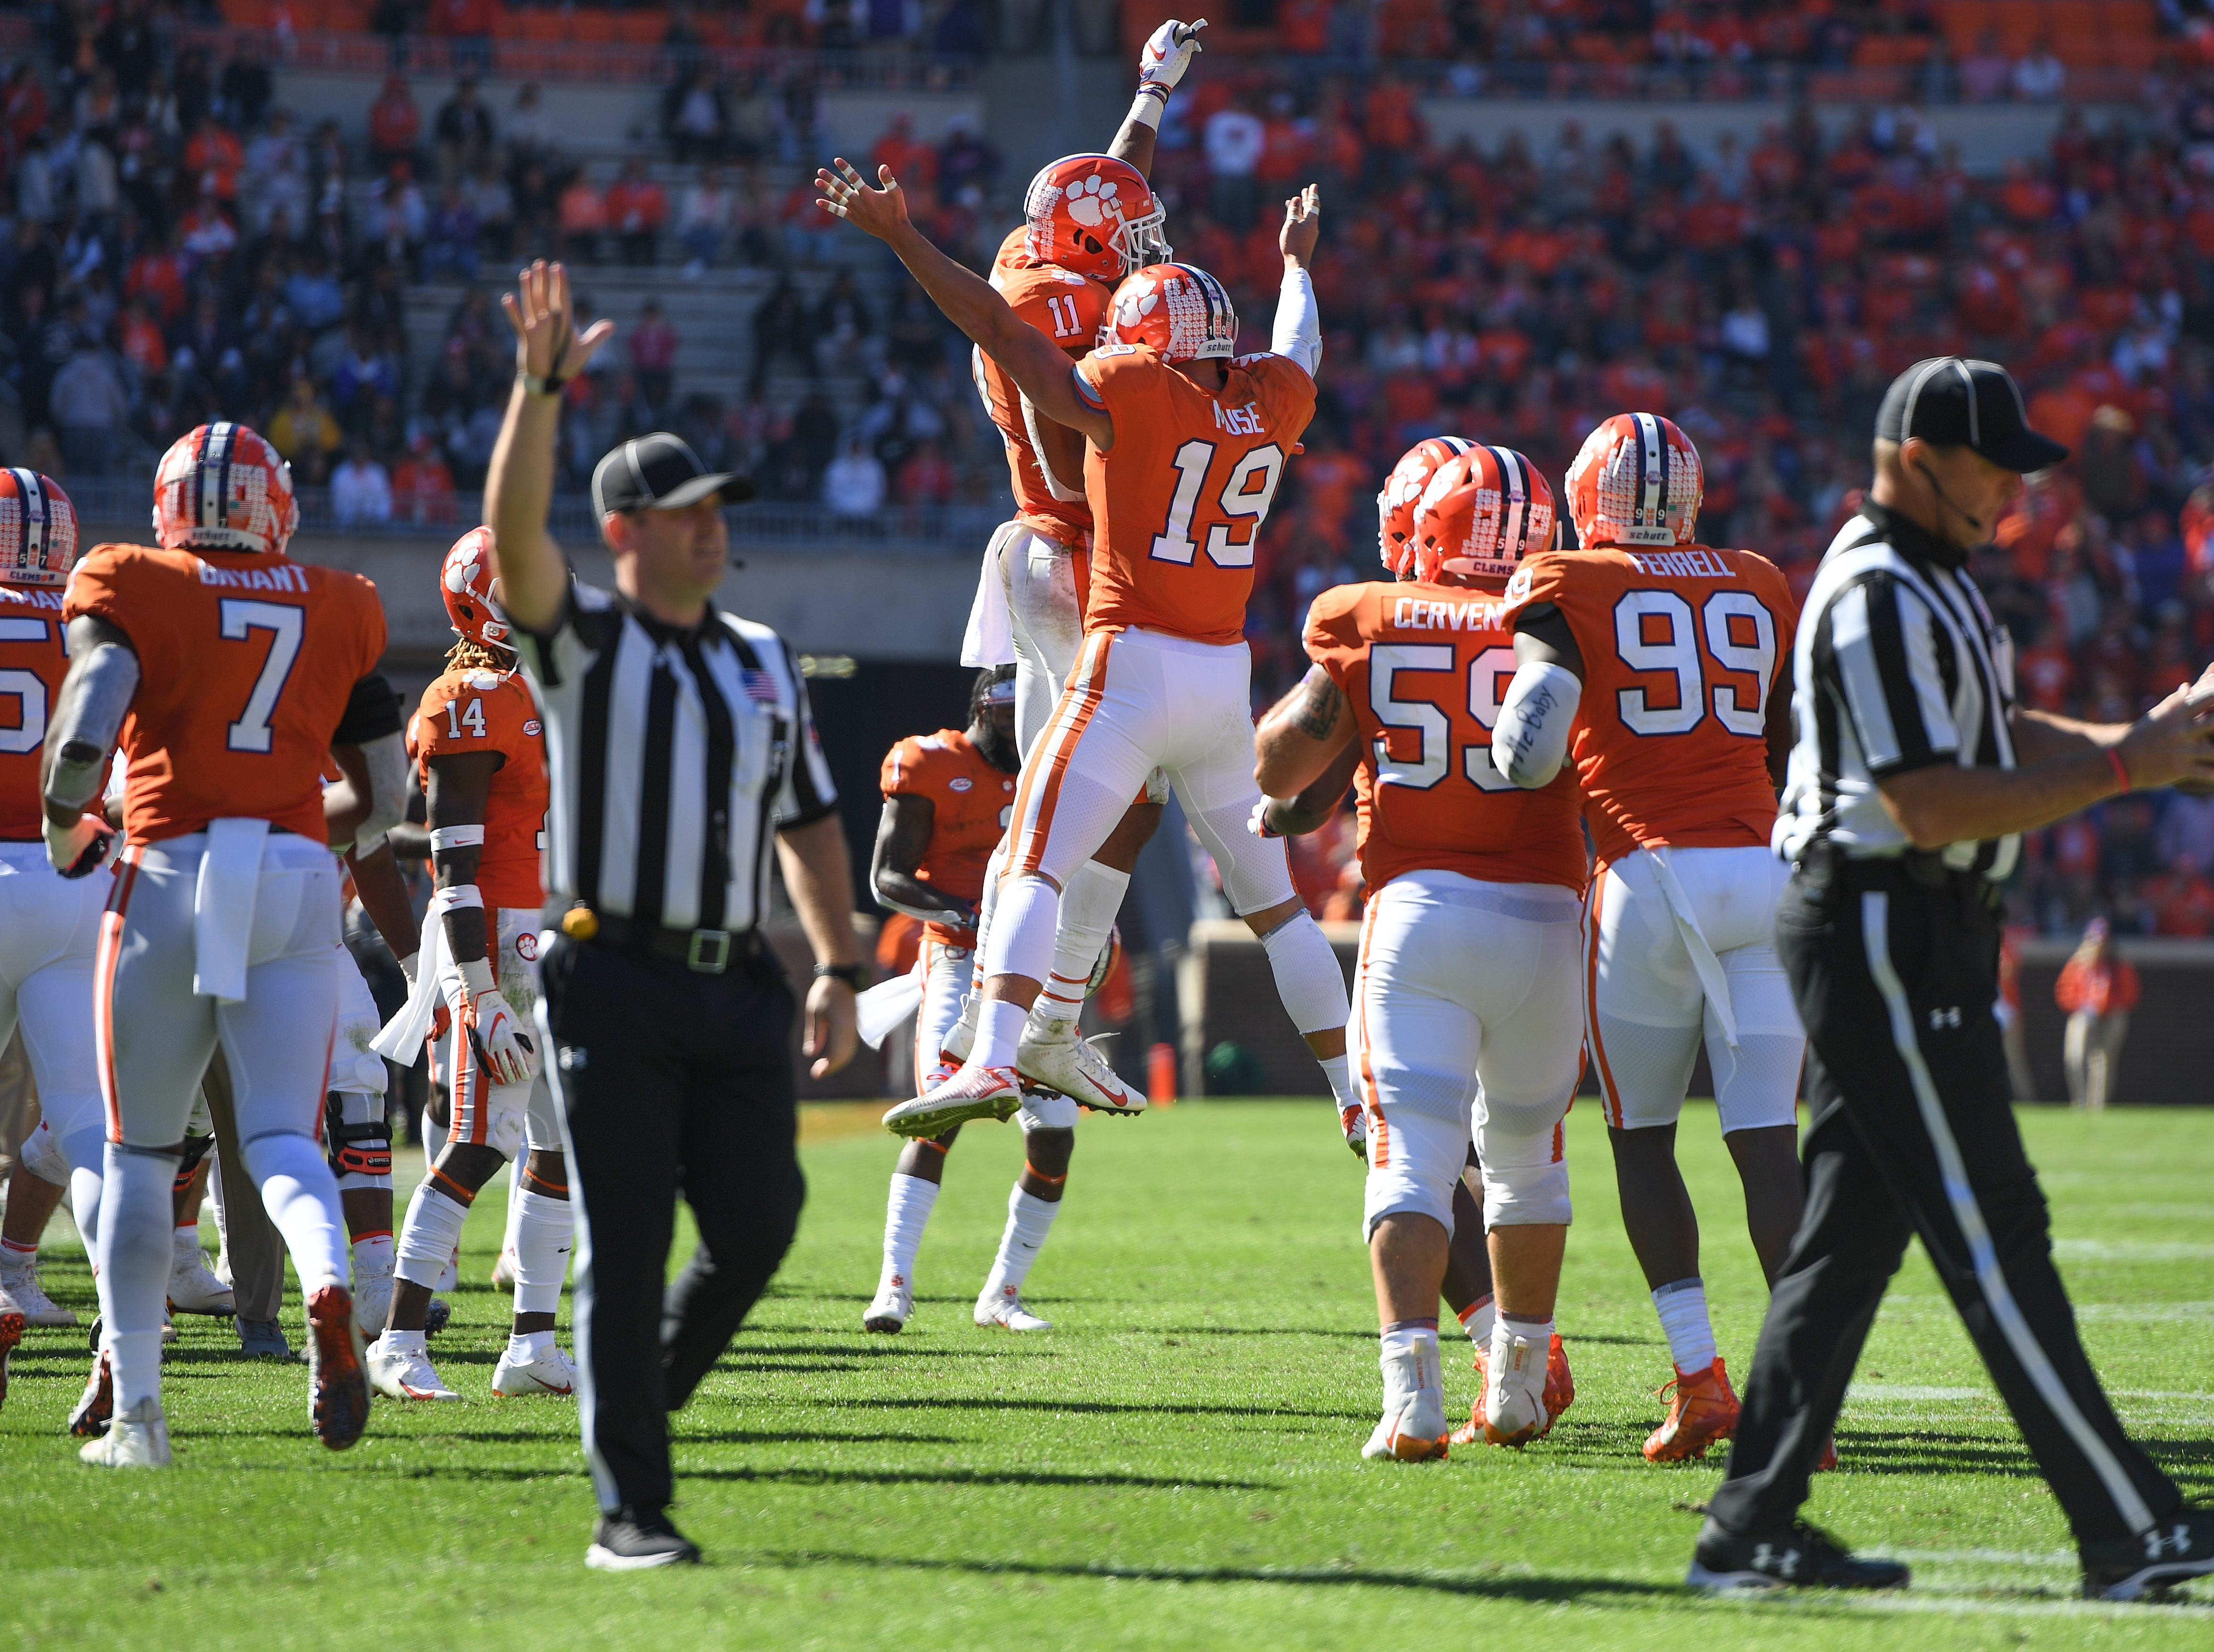 Clemson defensive back Tanner Muse (19) celebrates with safety Isaiah Simmons (11) after intercepting a Louisville pass during the 3rd quarter Saturday, November 3, 2018 at Clemson's Memorial Stadium.